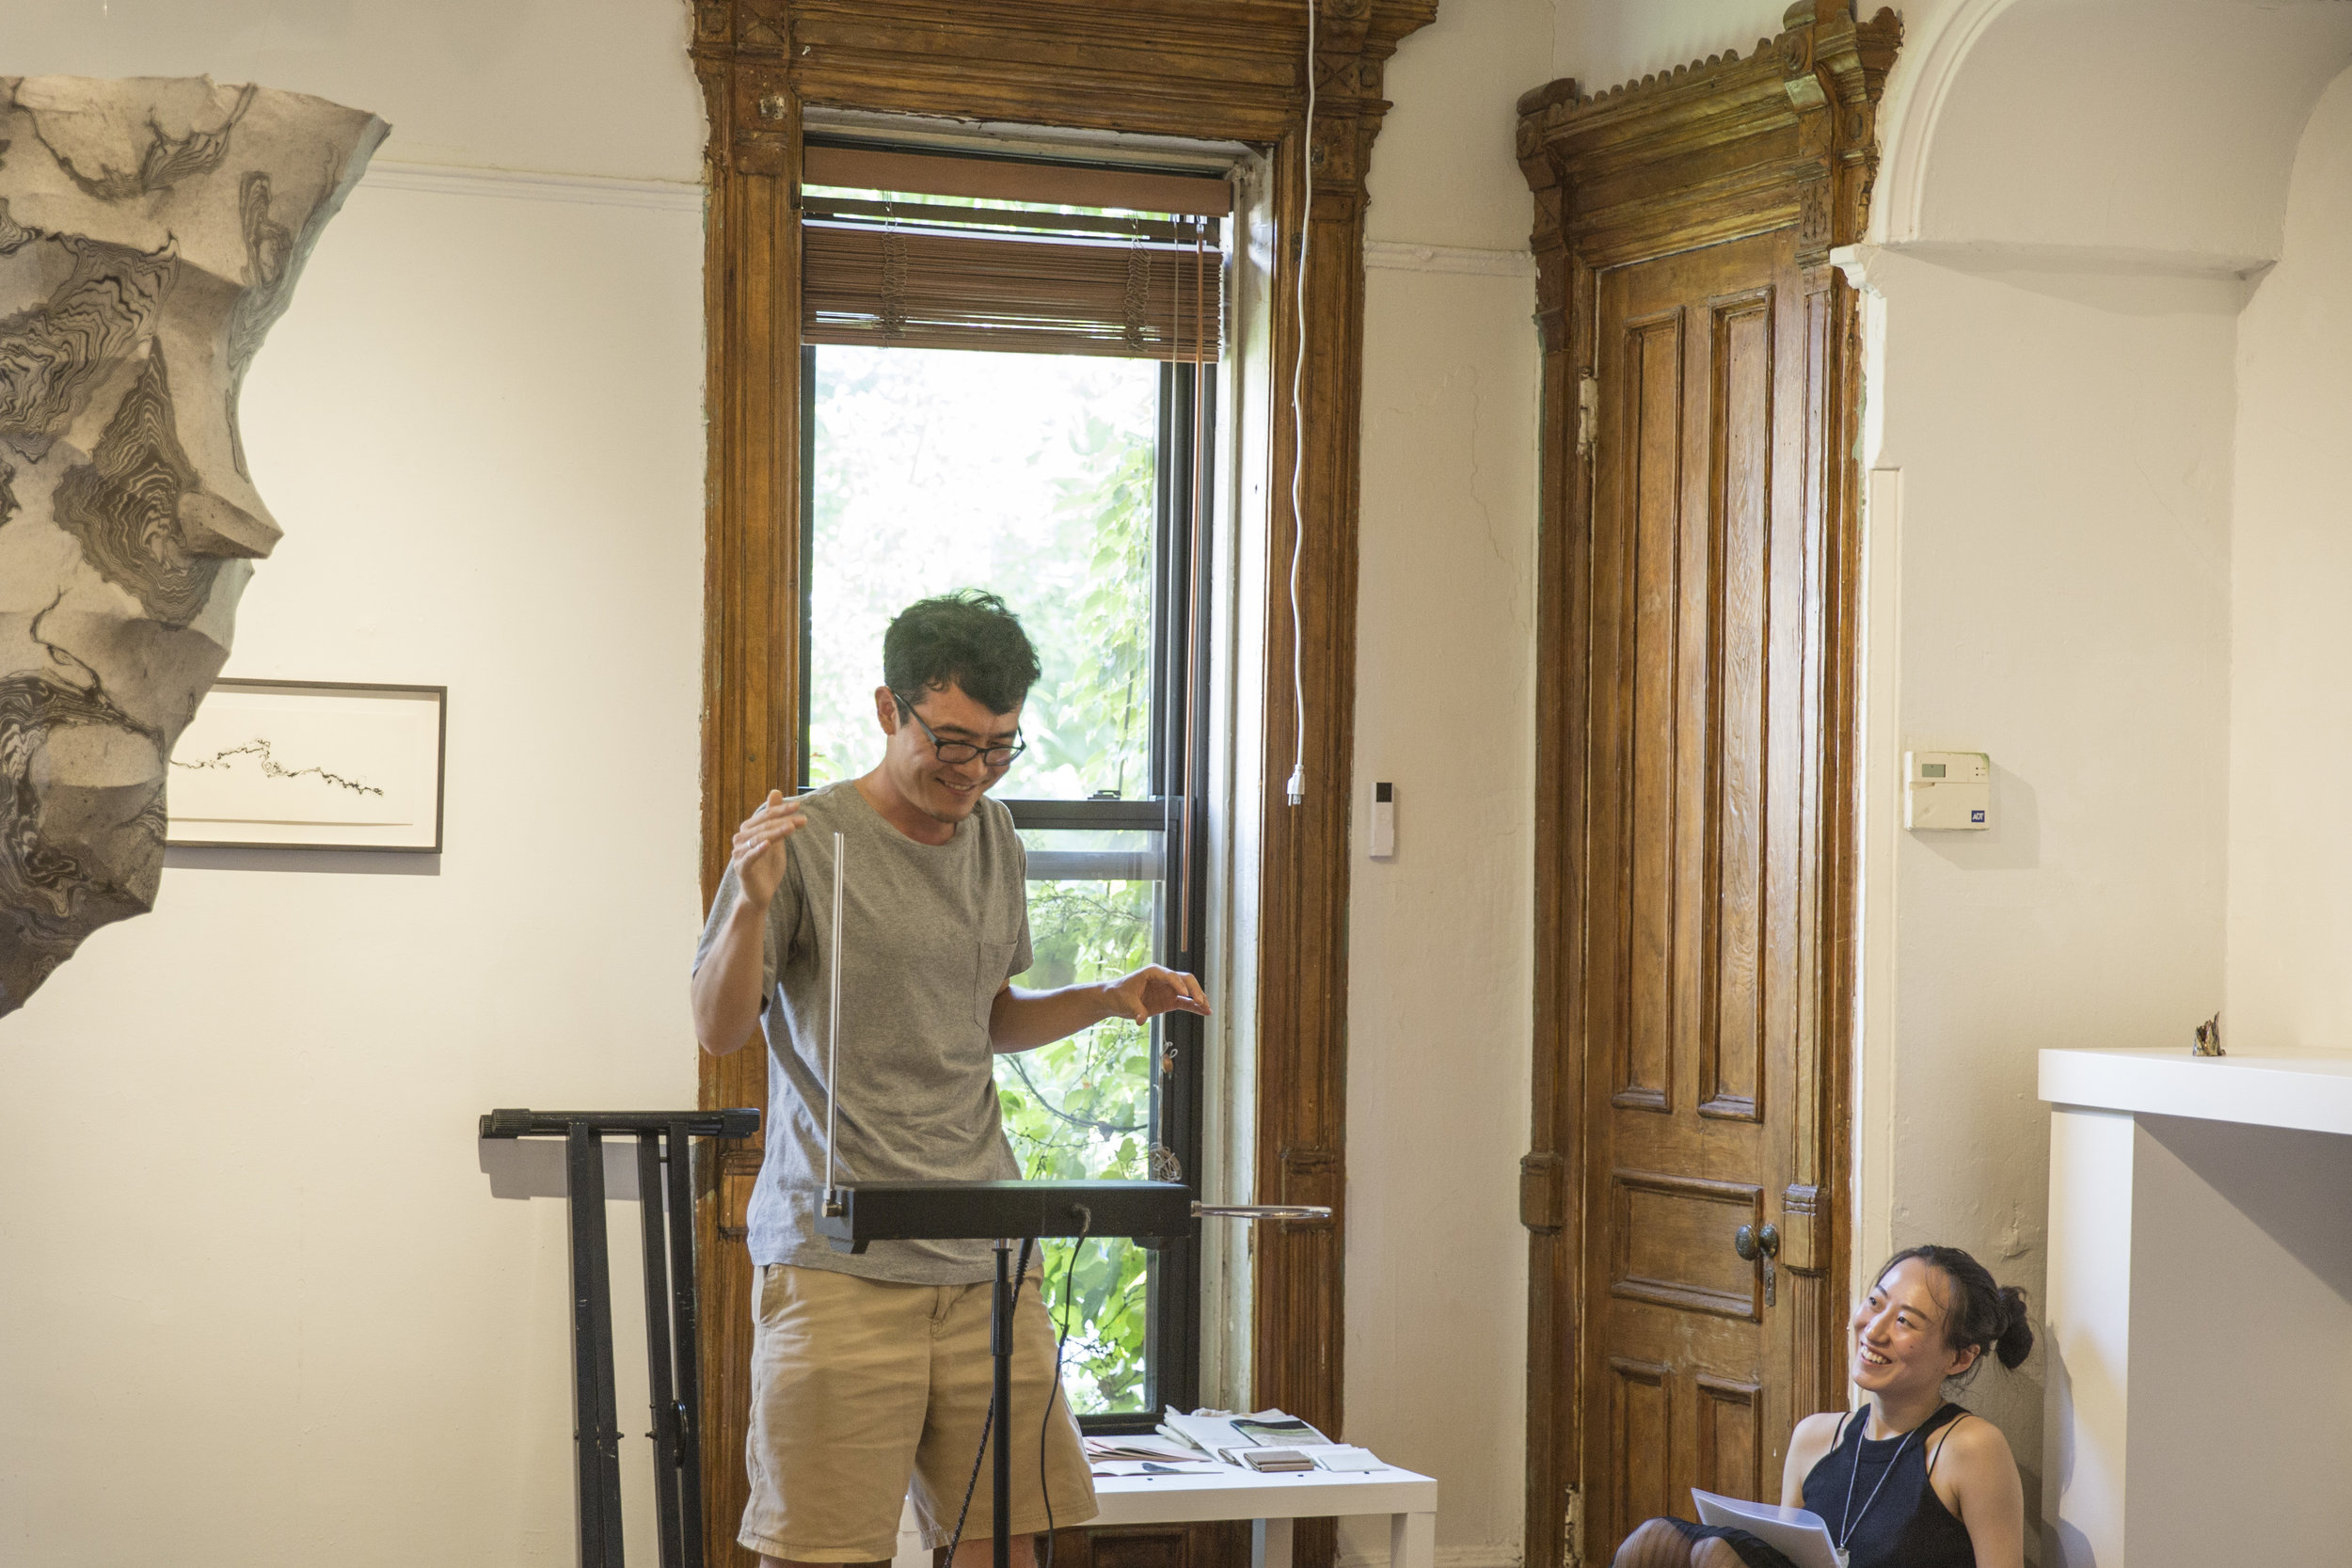 Theremin concert performed by Rafael Carrasquillo, photograph by Jingyao Huang, courtesy Fou Gallery.